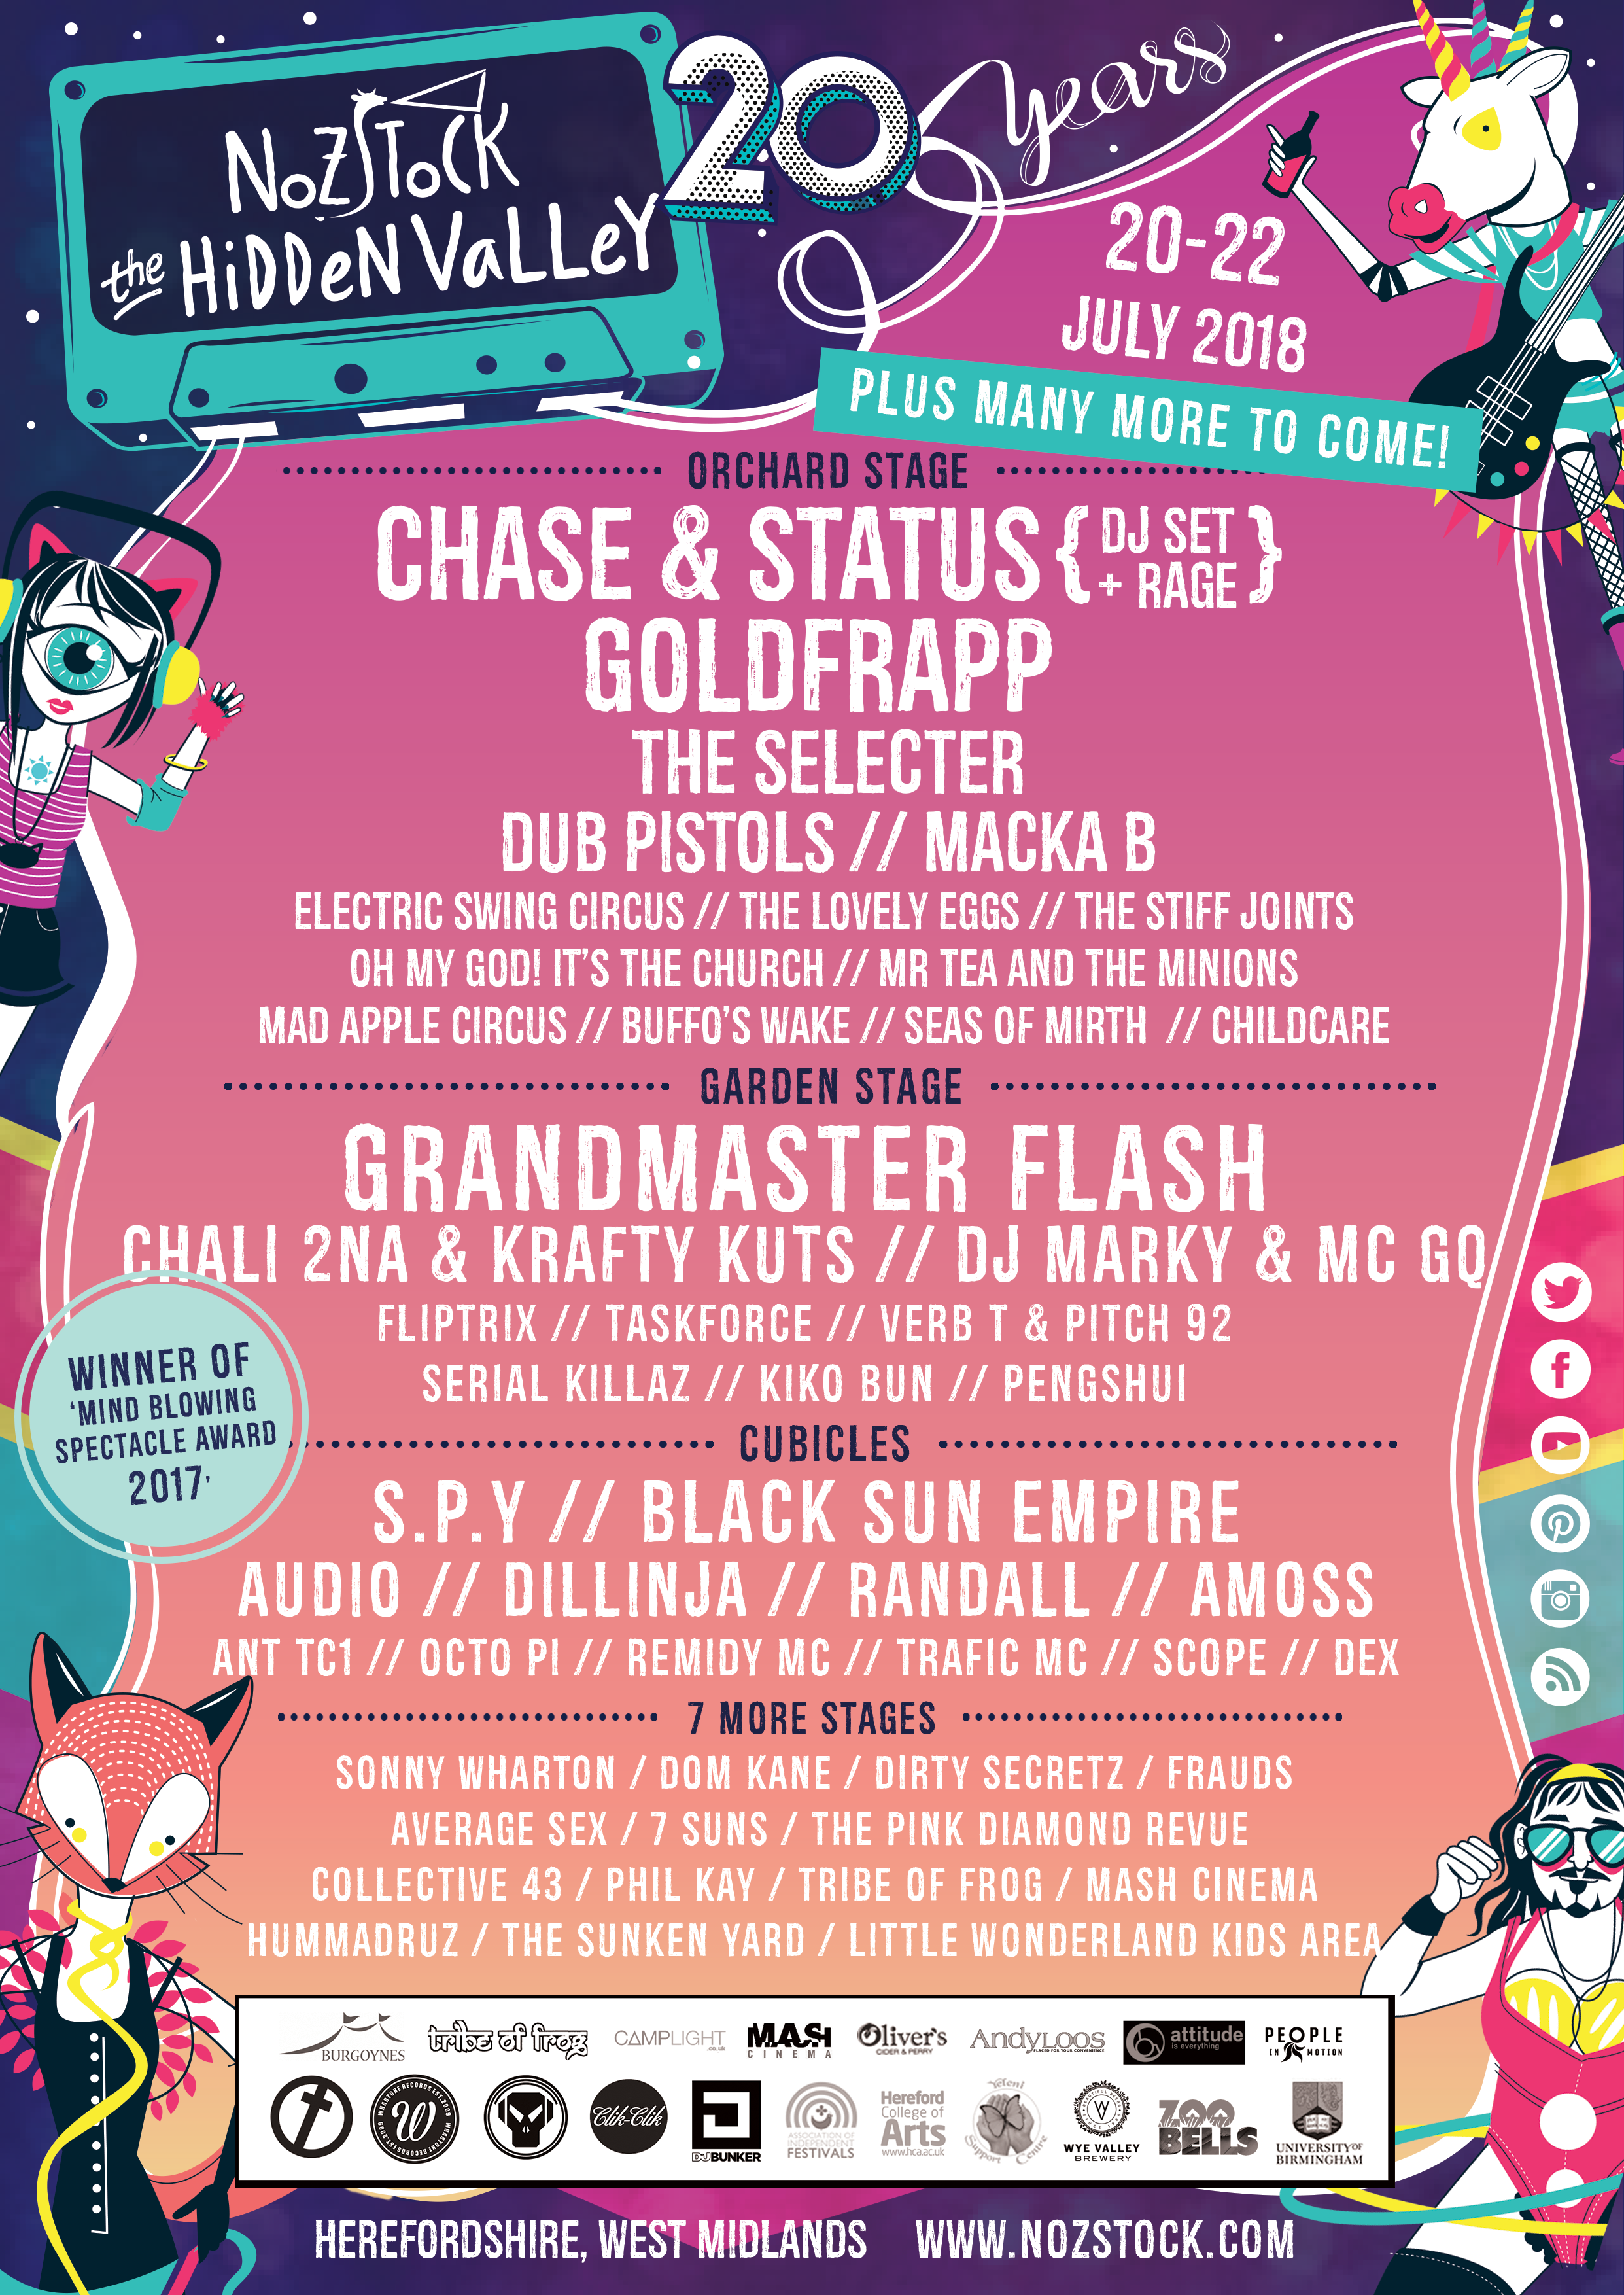 Nozstock-20th-anniversary-2018-first-wave-of-names-revealed-FINAL.png